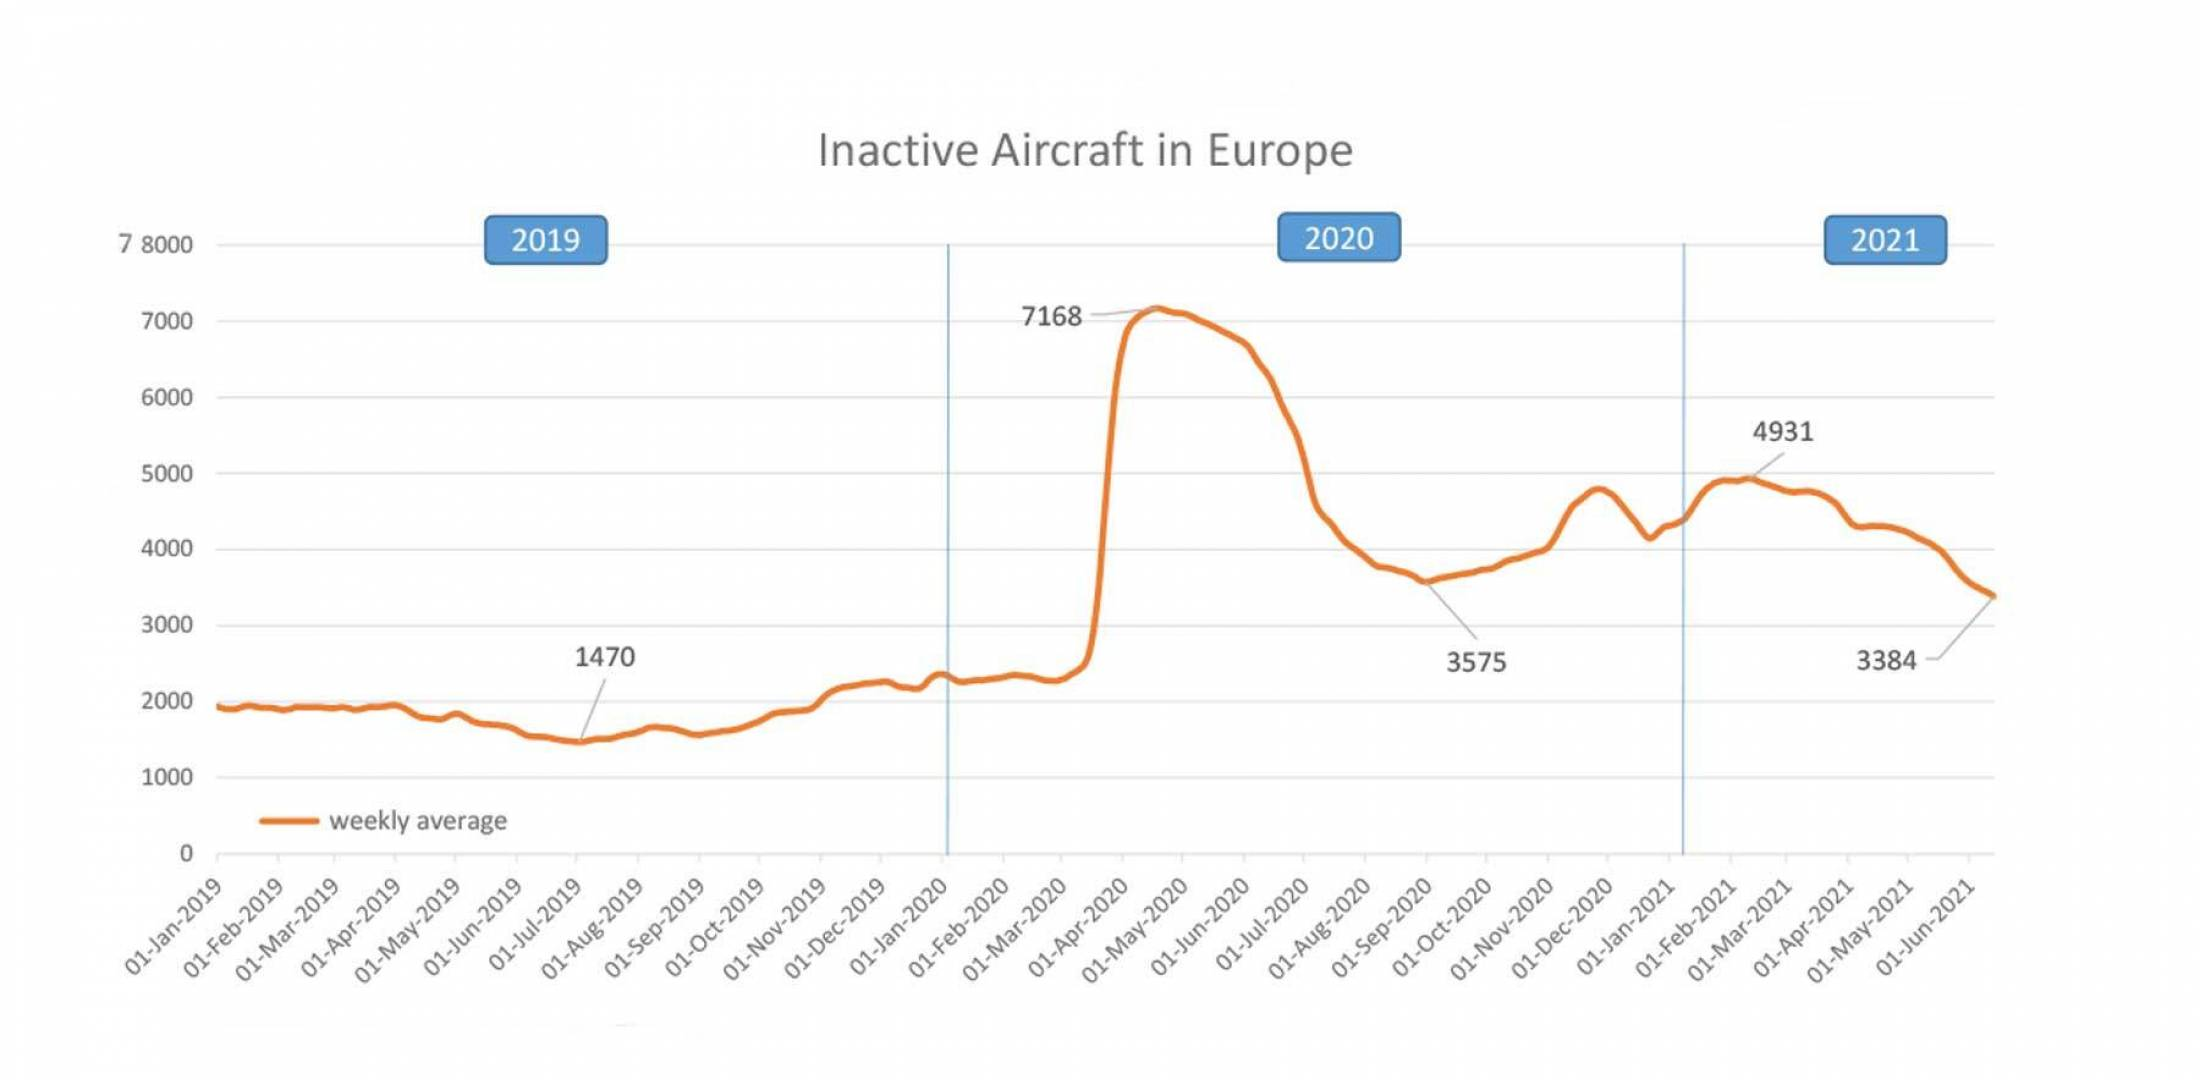 graph showing inactive aircraft over time